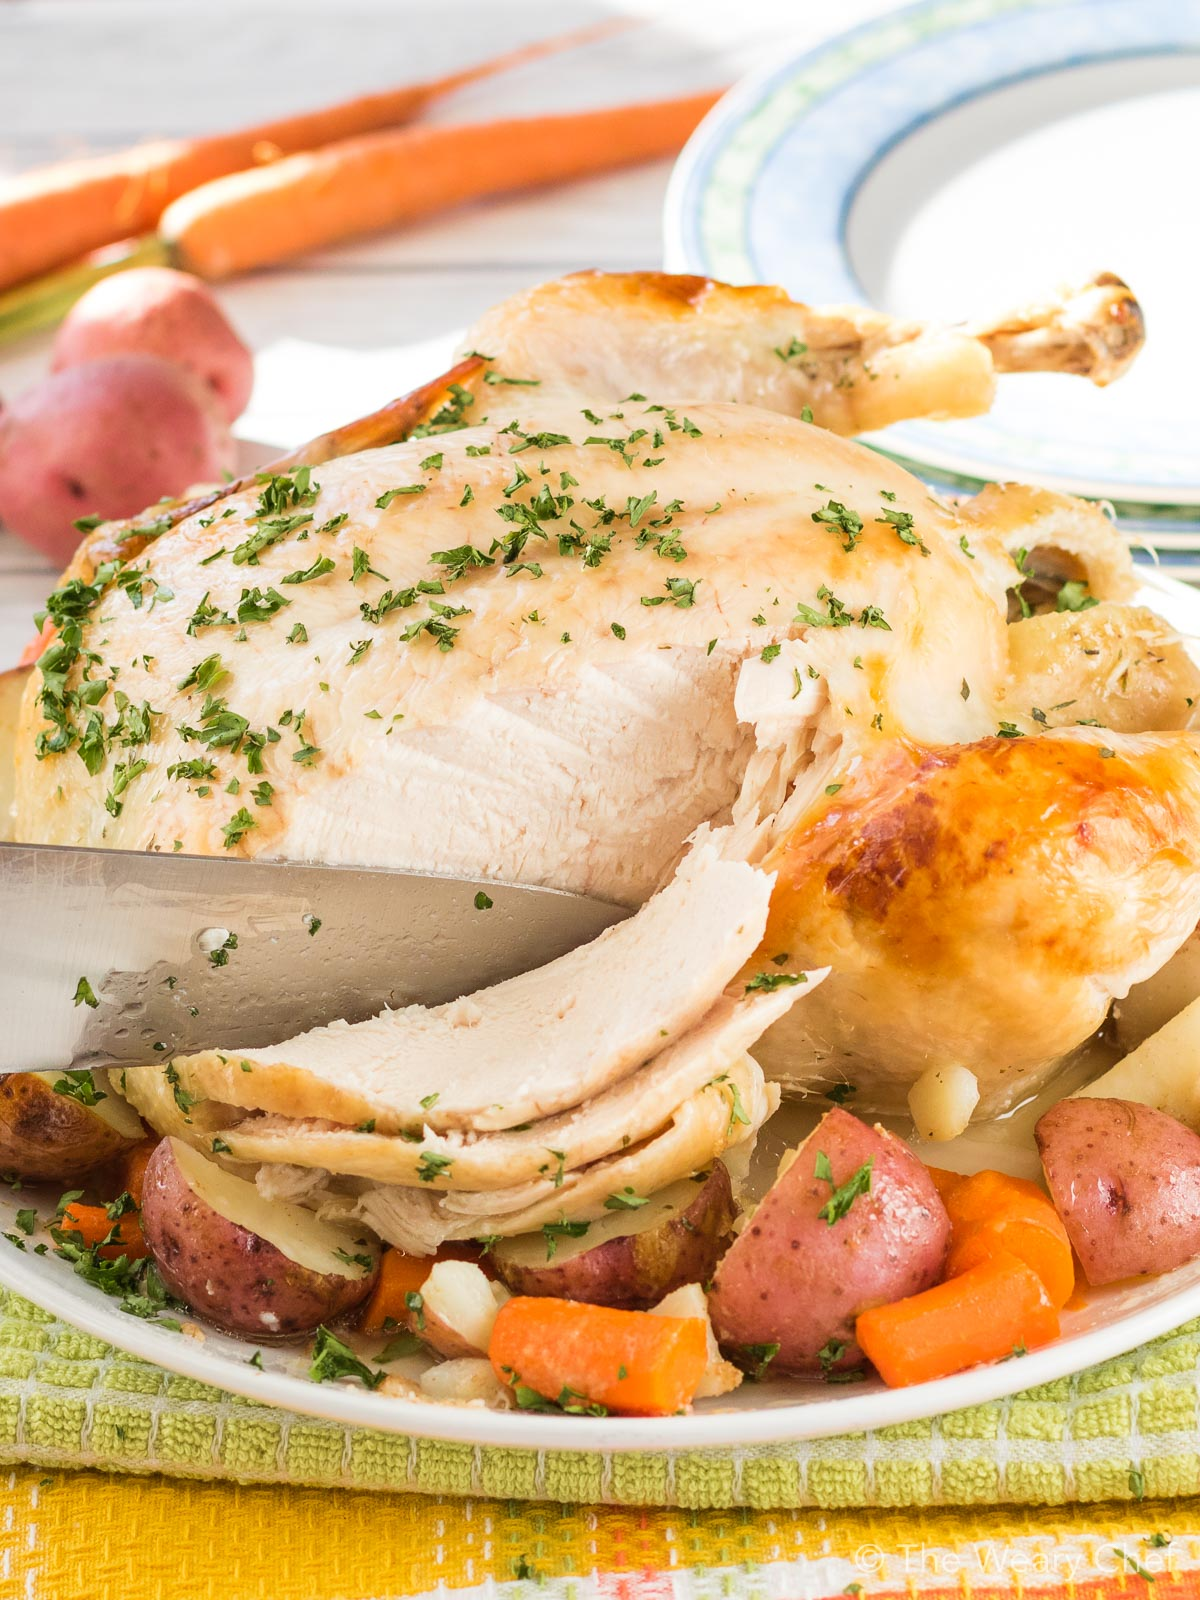 This tender and juicy dutch oven roast chicken is seasoned with Ranch flavor and turns out perfectly every time!